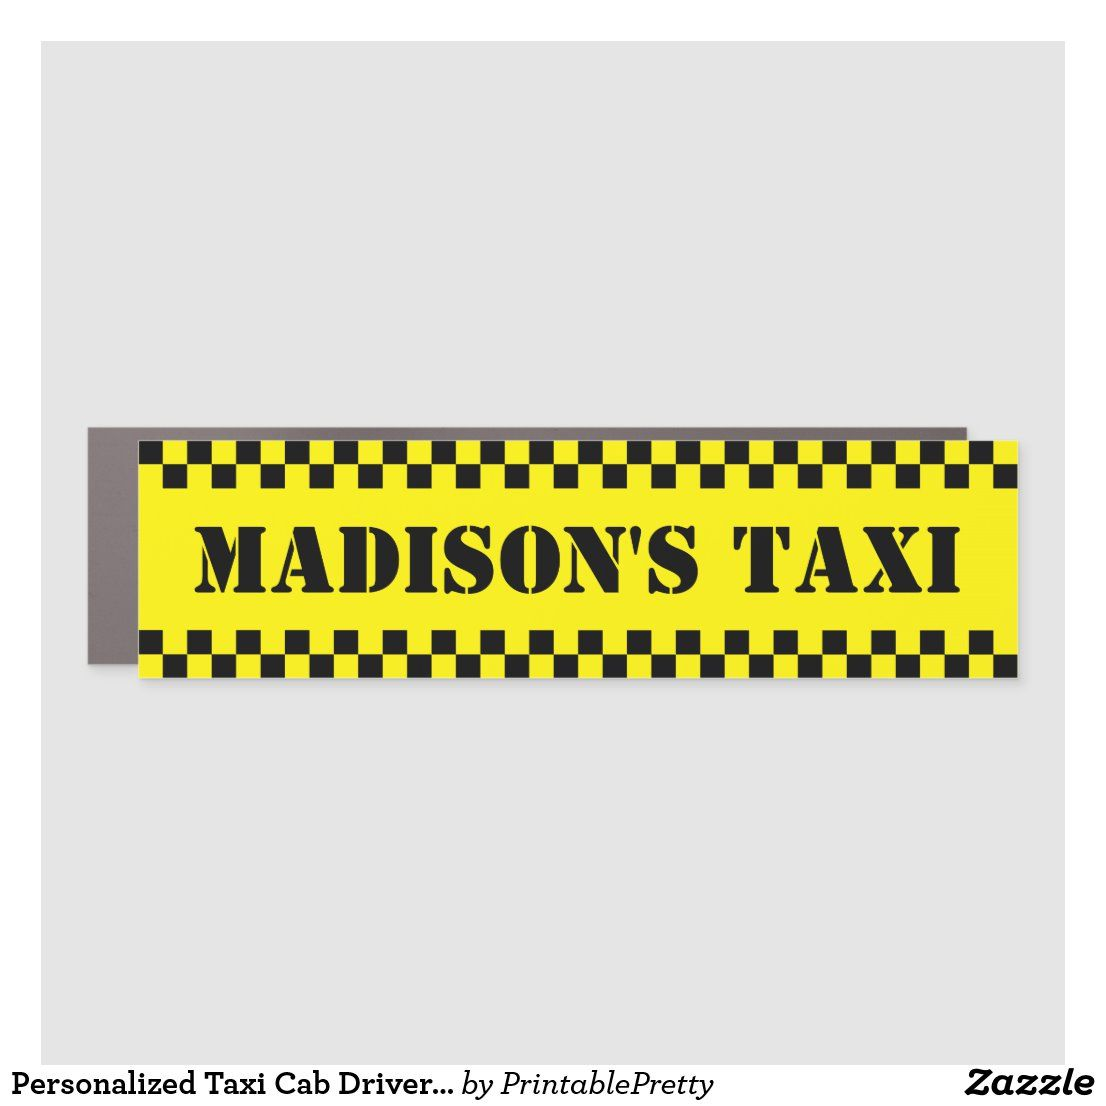 Personalized Taxi Cab Driver Funny Humor Car Magnet Zazzle Com Taxi Cab Cab Driver Car Magnets [ 1106 x 1106 Pixel ]